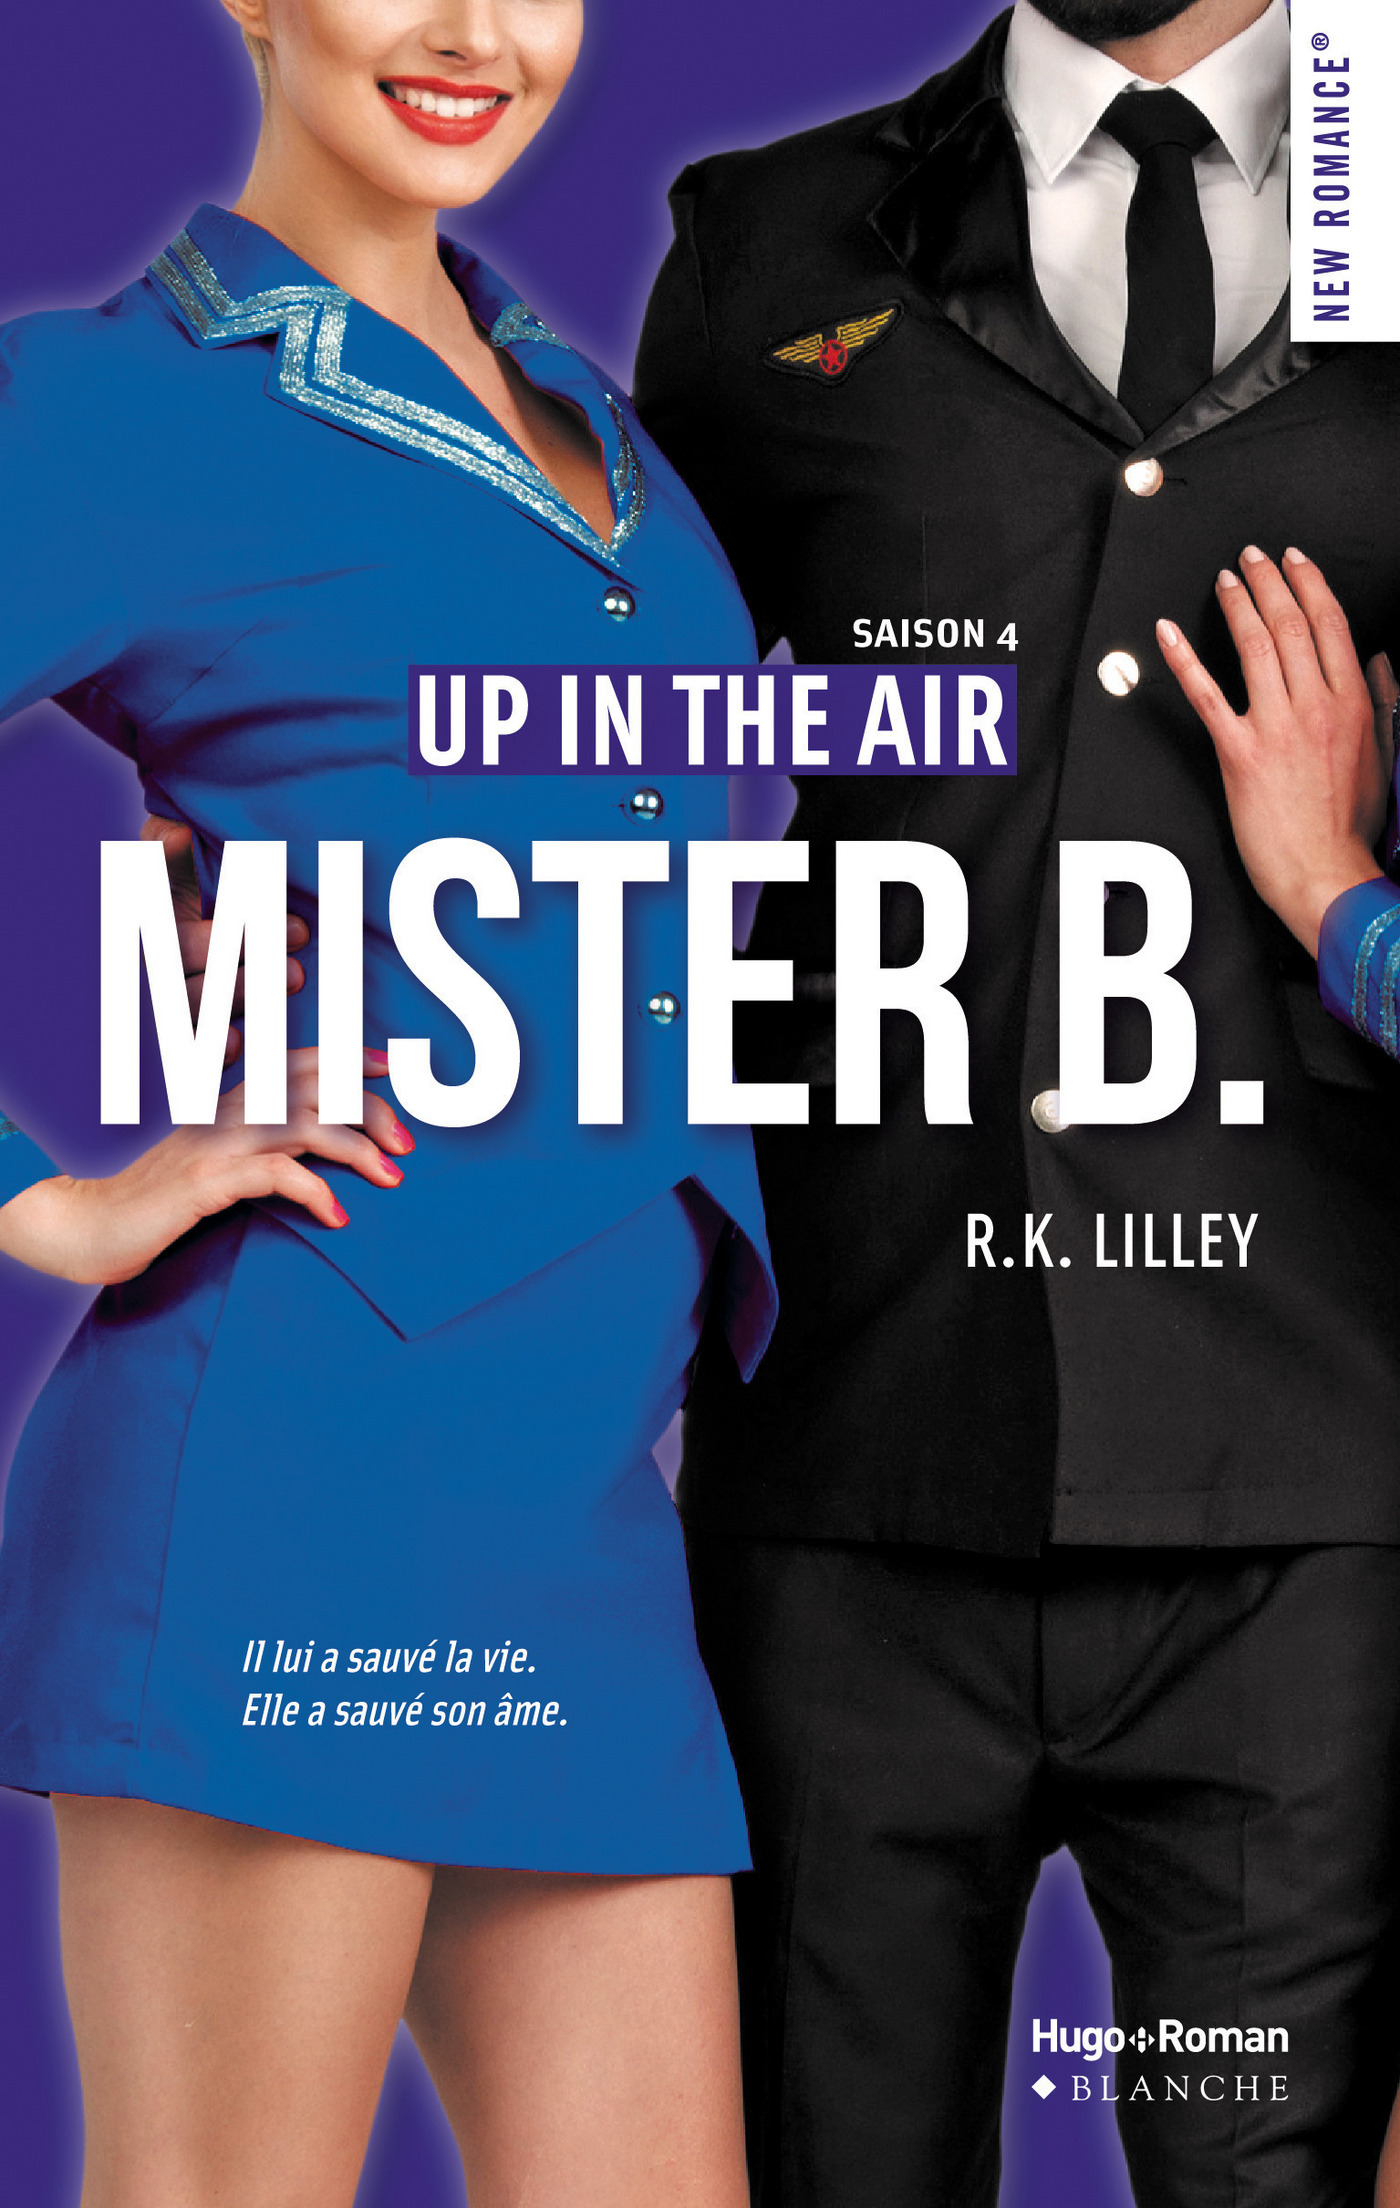 Up in the air Saison 4 Mister B. -Extrait offert-